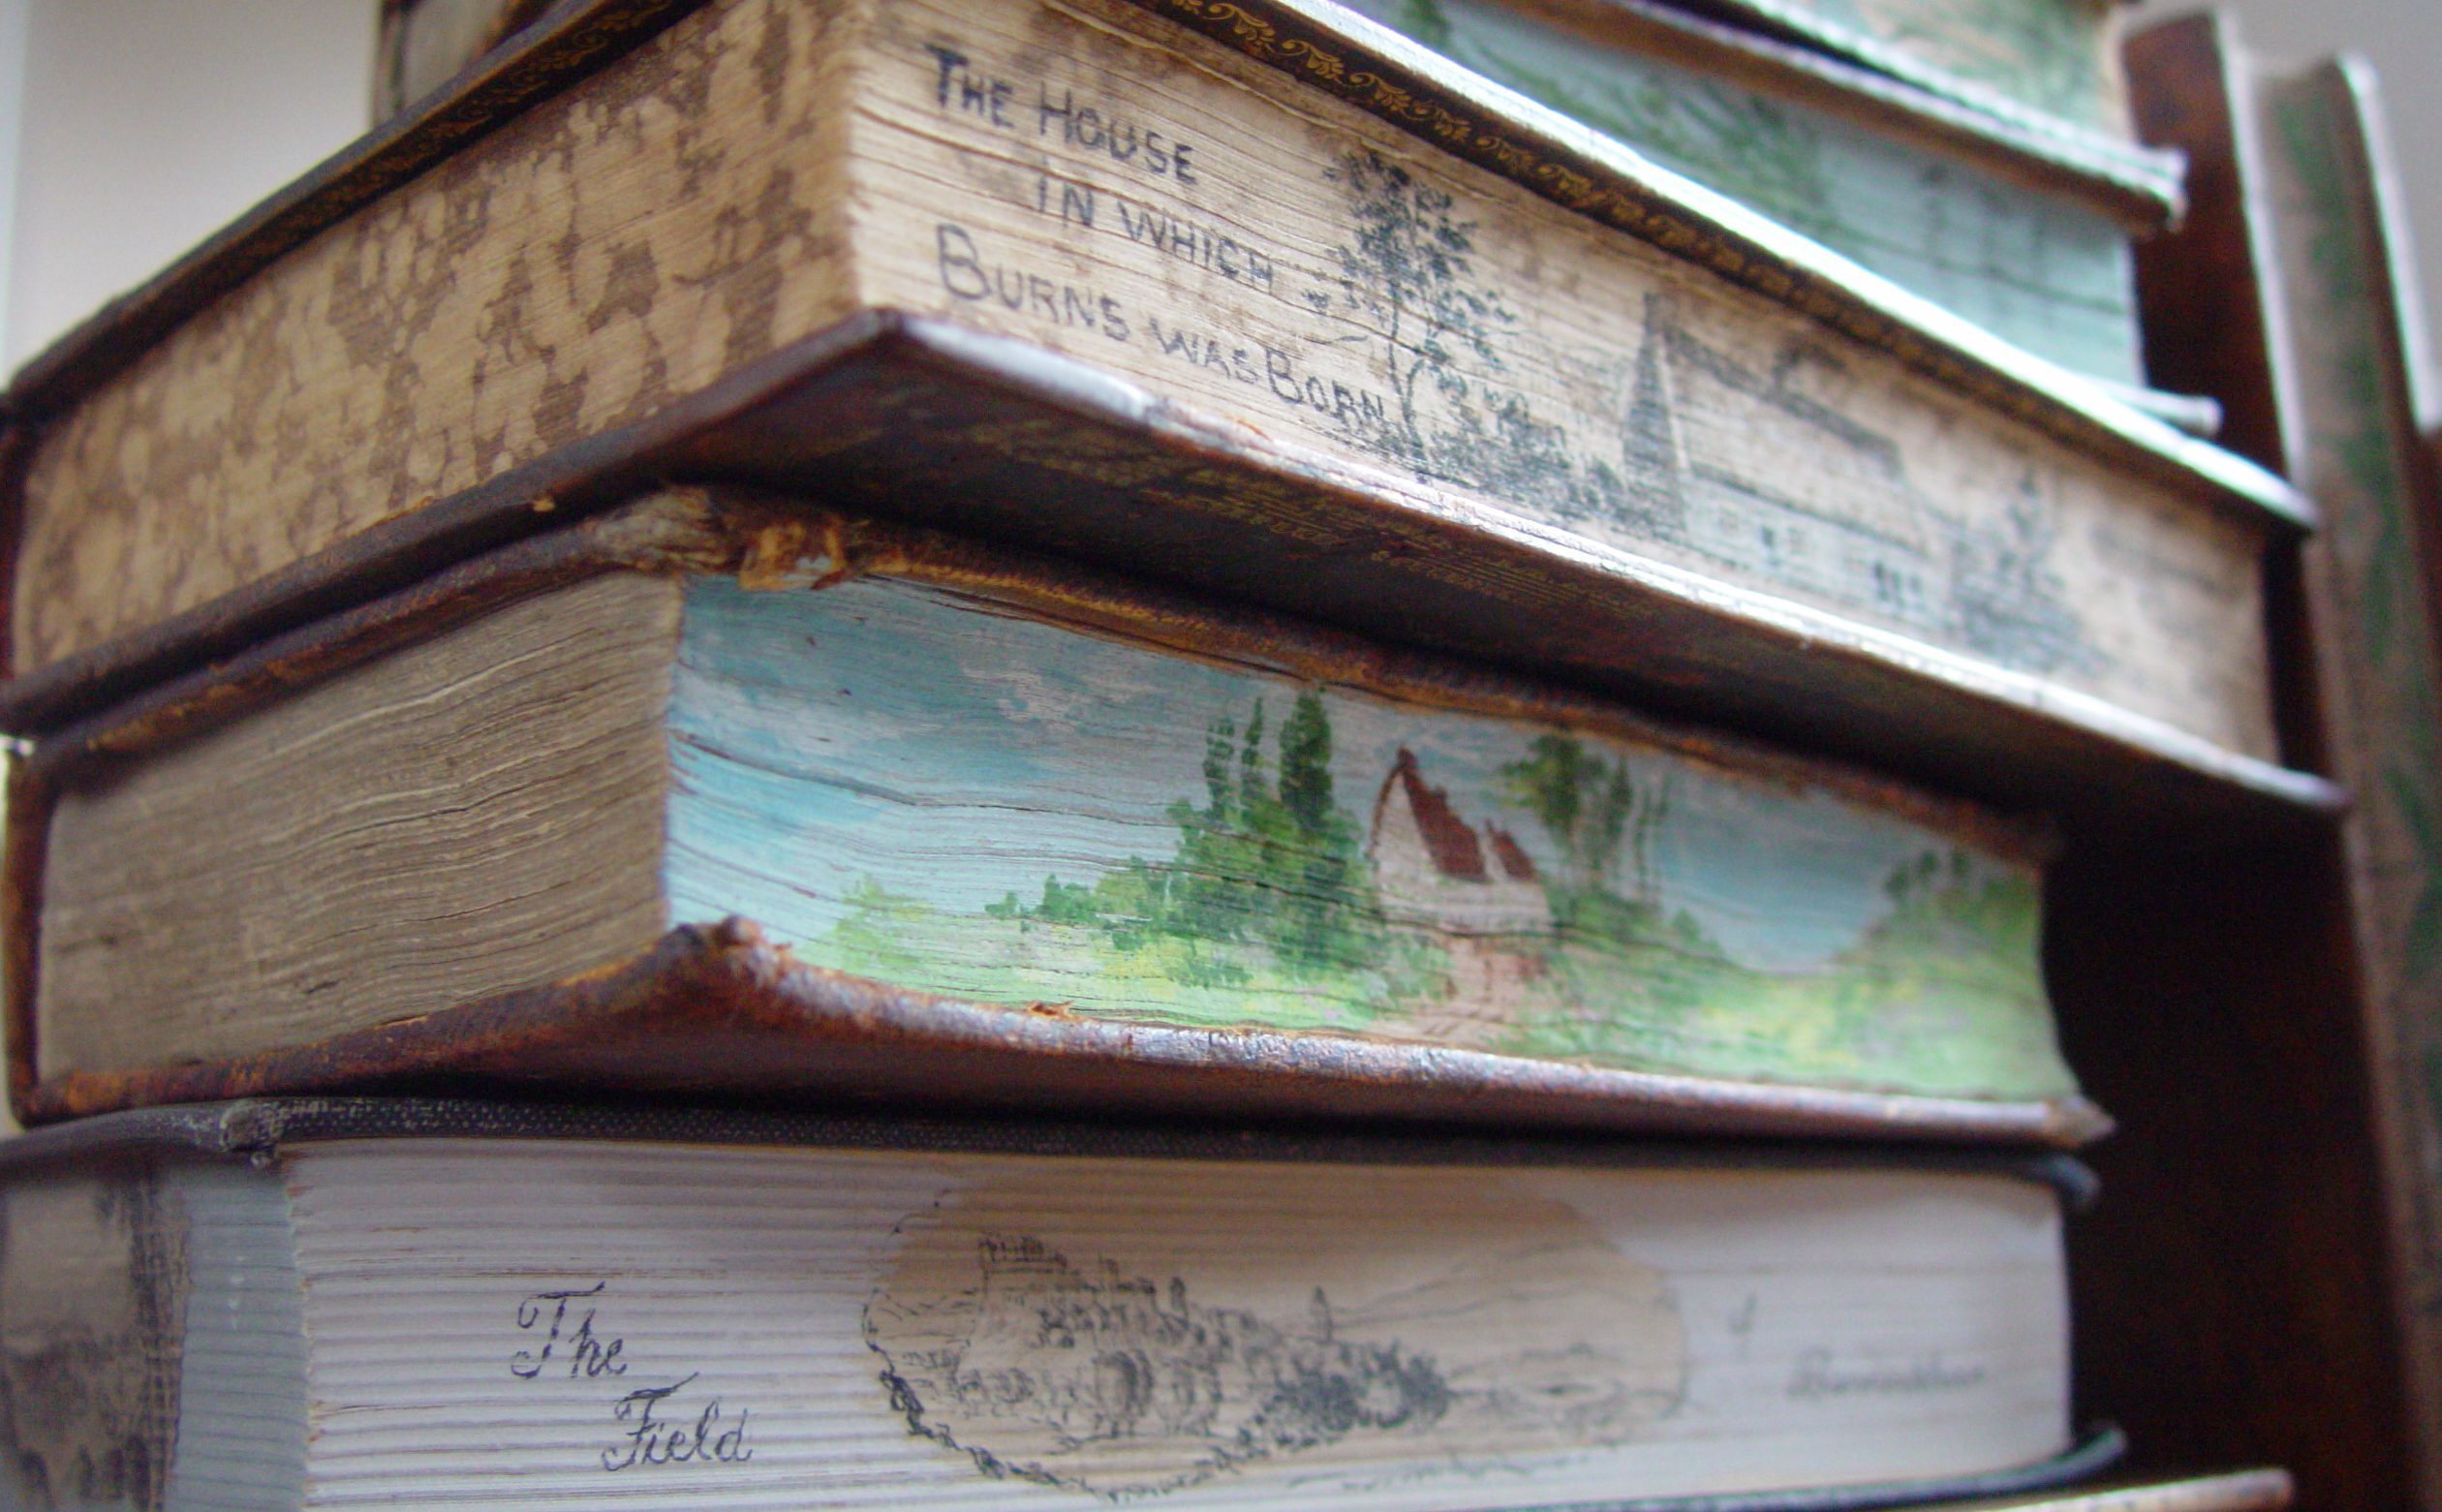 Painted edge pages of a book in the Murison Collection.